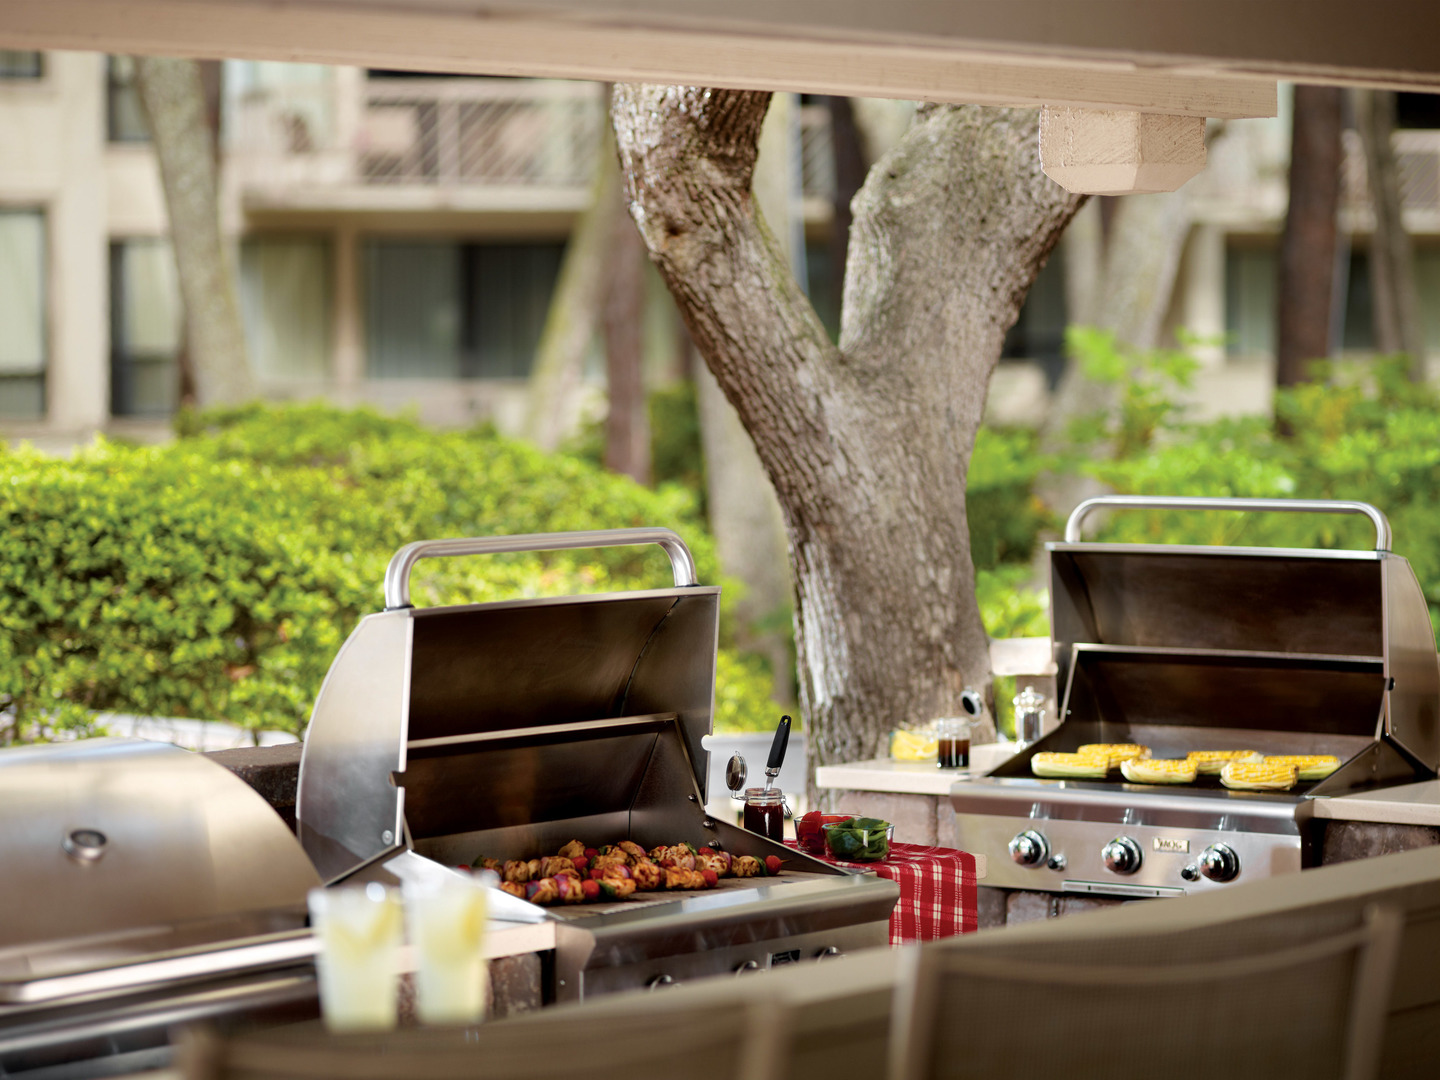 Marriott's Monarch Grills. Marriott's Monarch is located in Hilton Head Island, South Carolina United States.